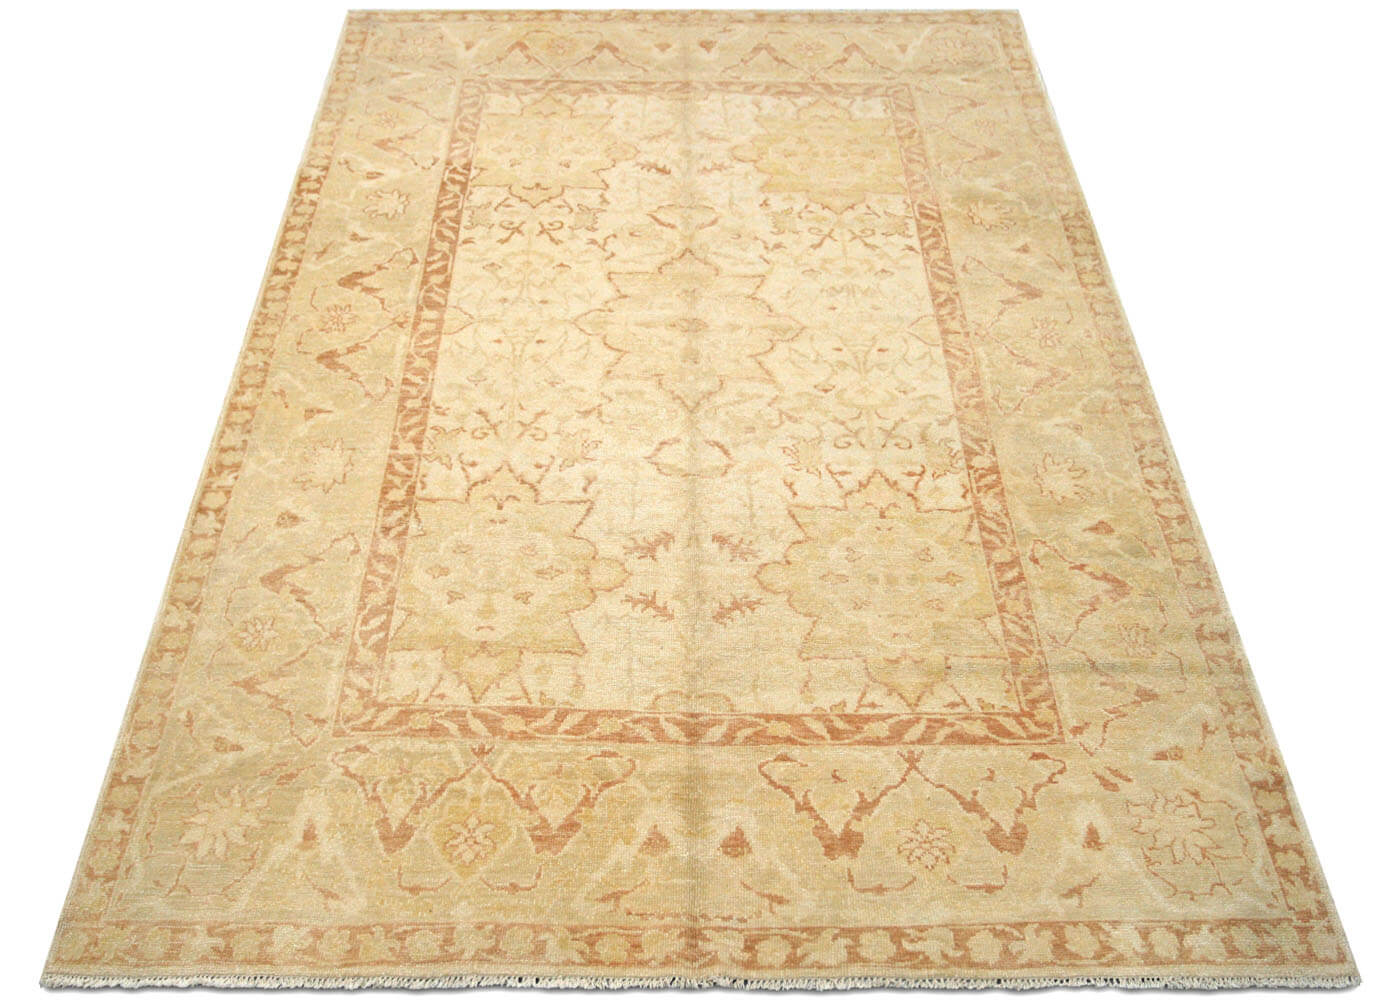 "Recently Woven Turkish Oushak Rug - 5'9"" x 8'7"""